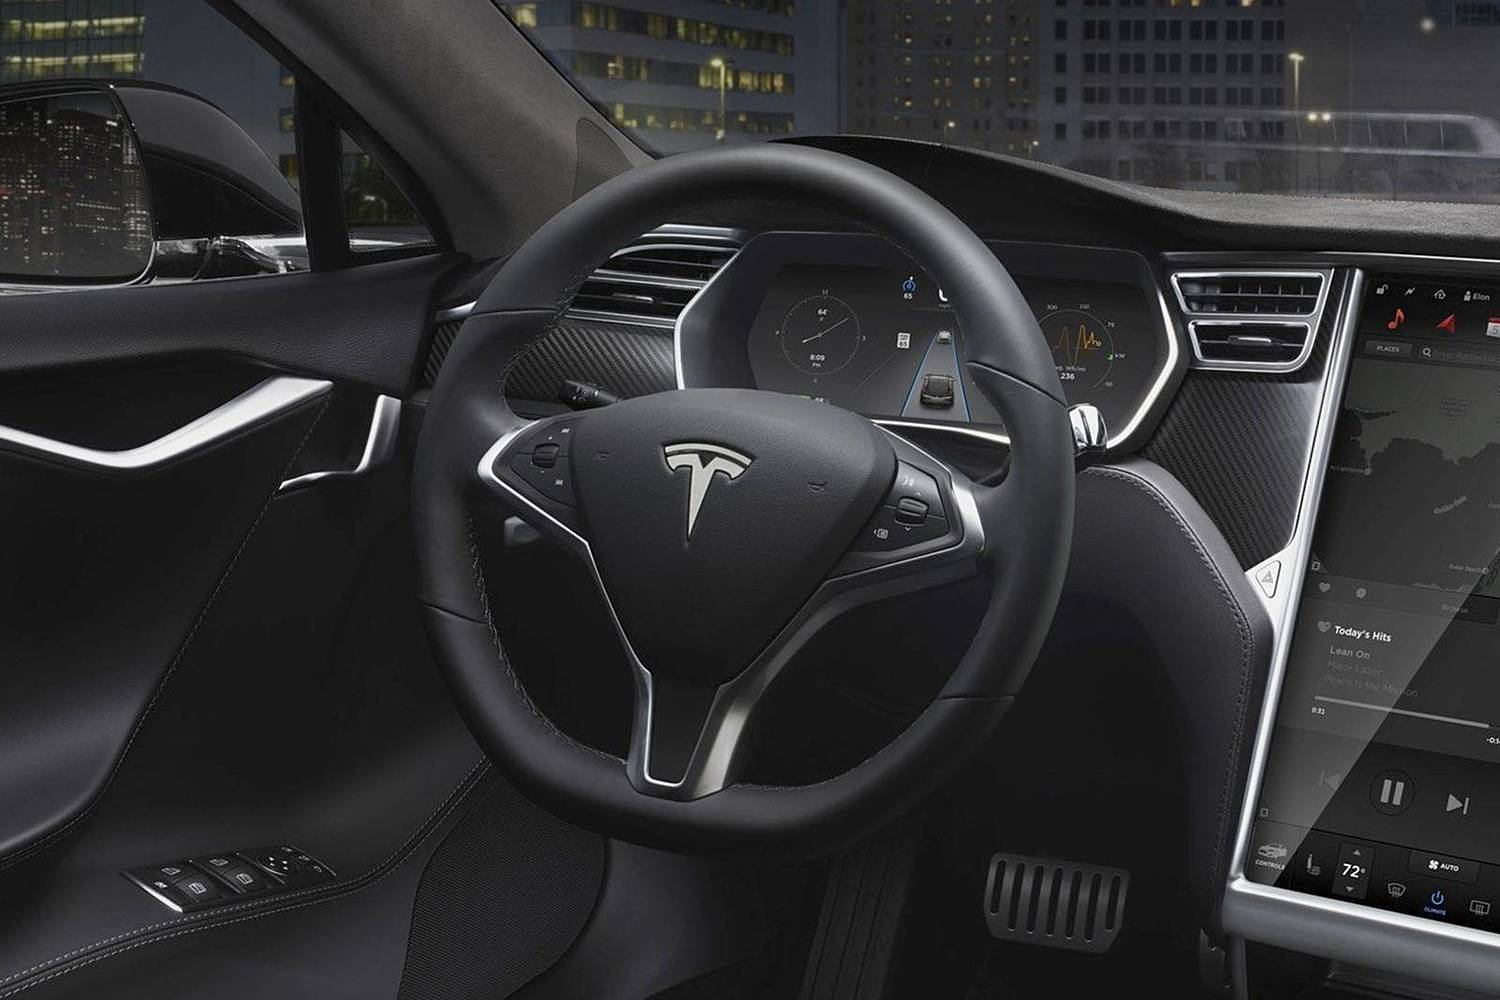 Tesla Model S 90D Sedan Steering Wheel Detail (2016 model year shown)